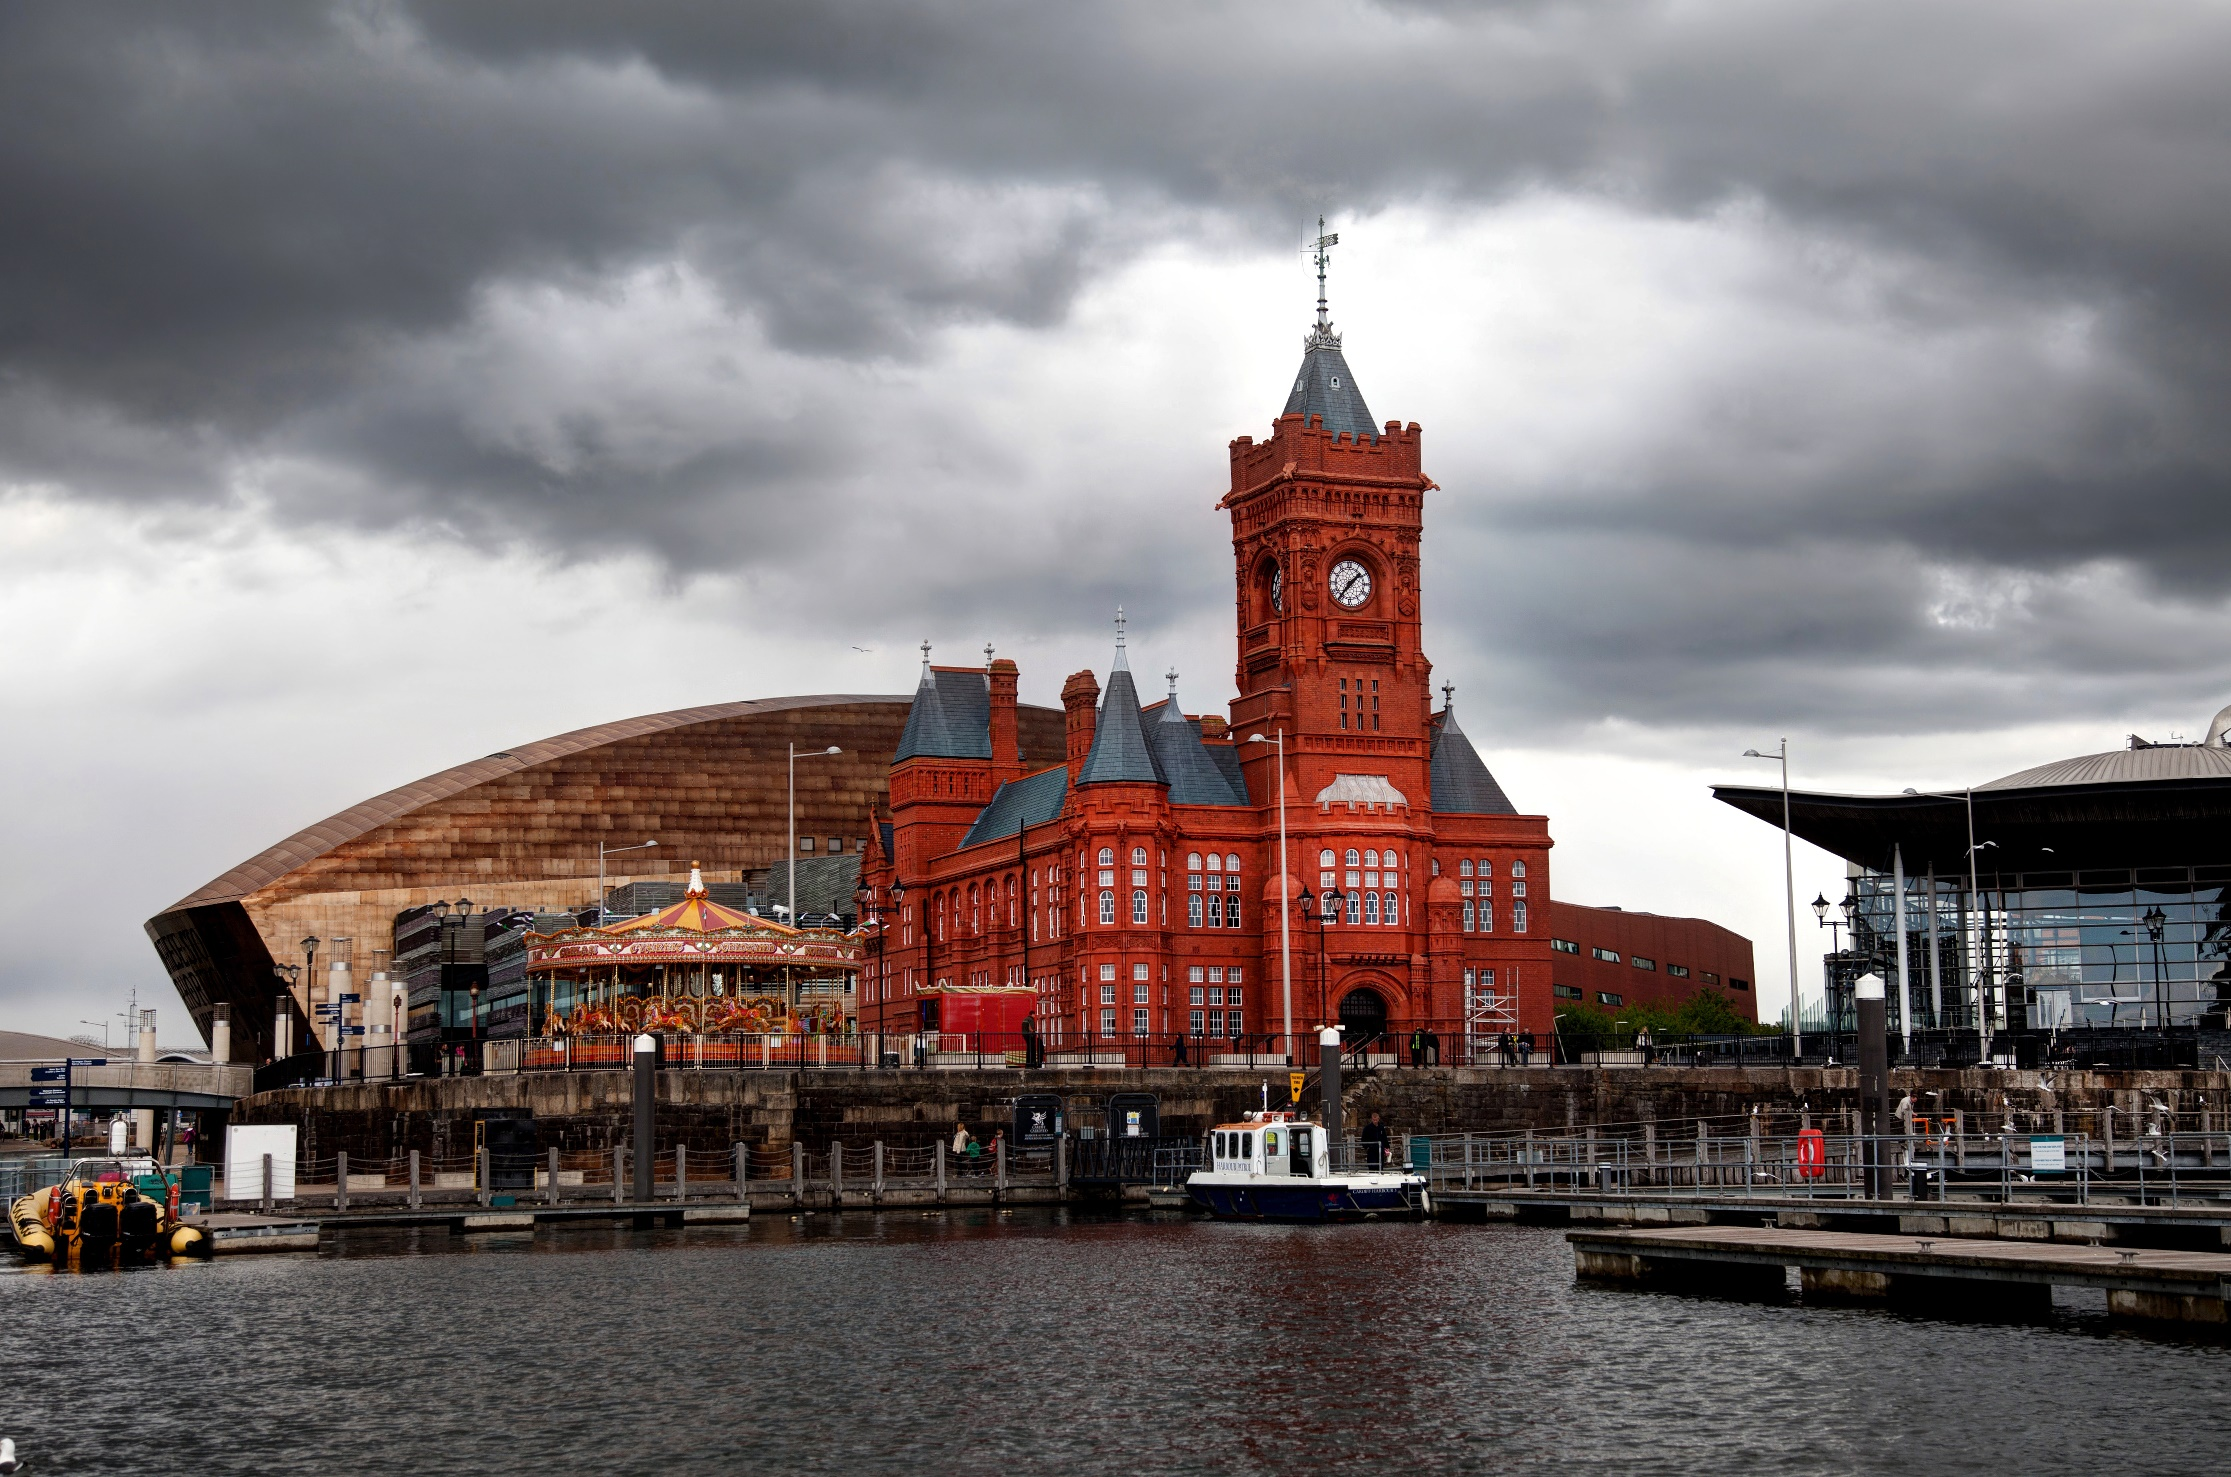 Views around Cardiff Bay and the Millennium Waterfront and the Roald Dahl Plass South Wales UK